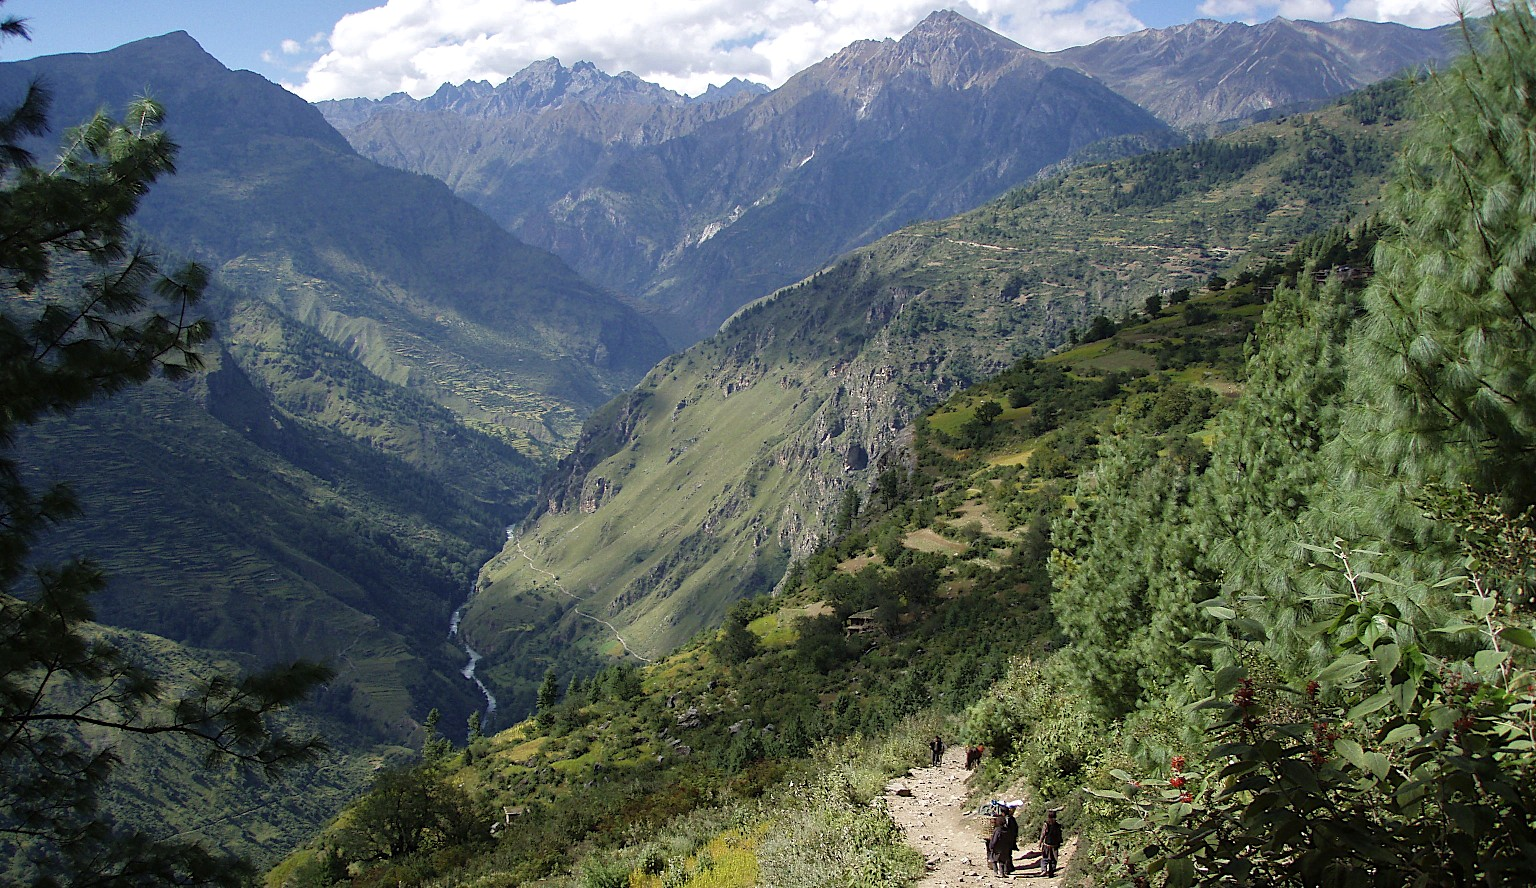 The start of the trail to China from Simikot